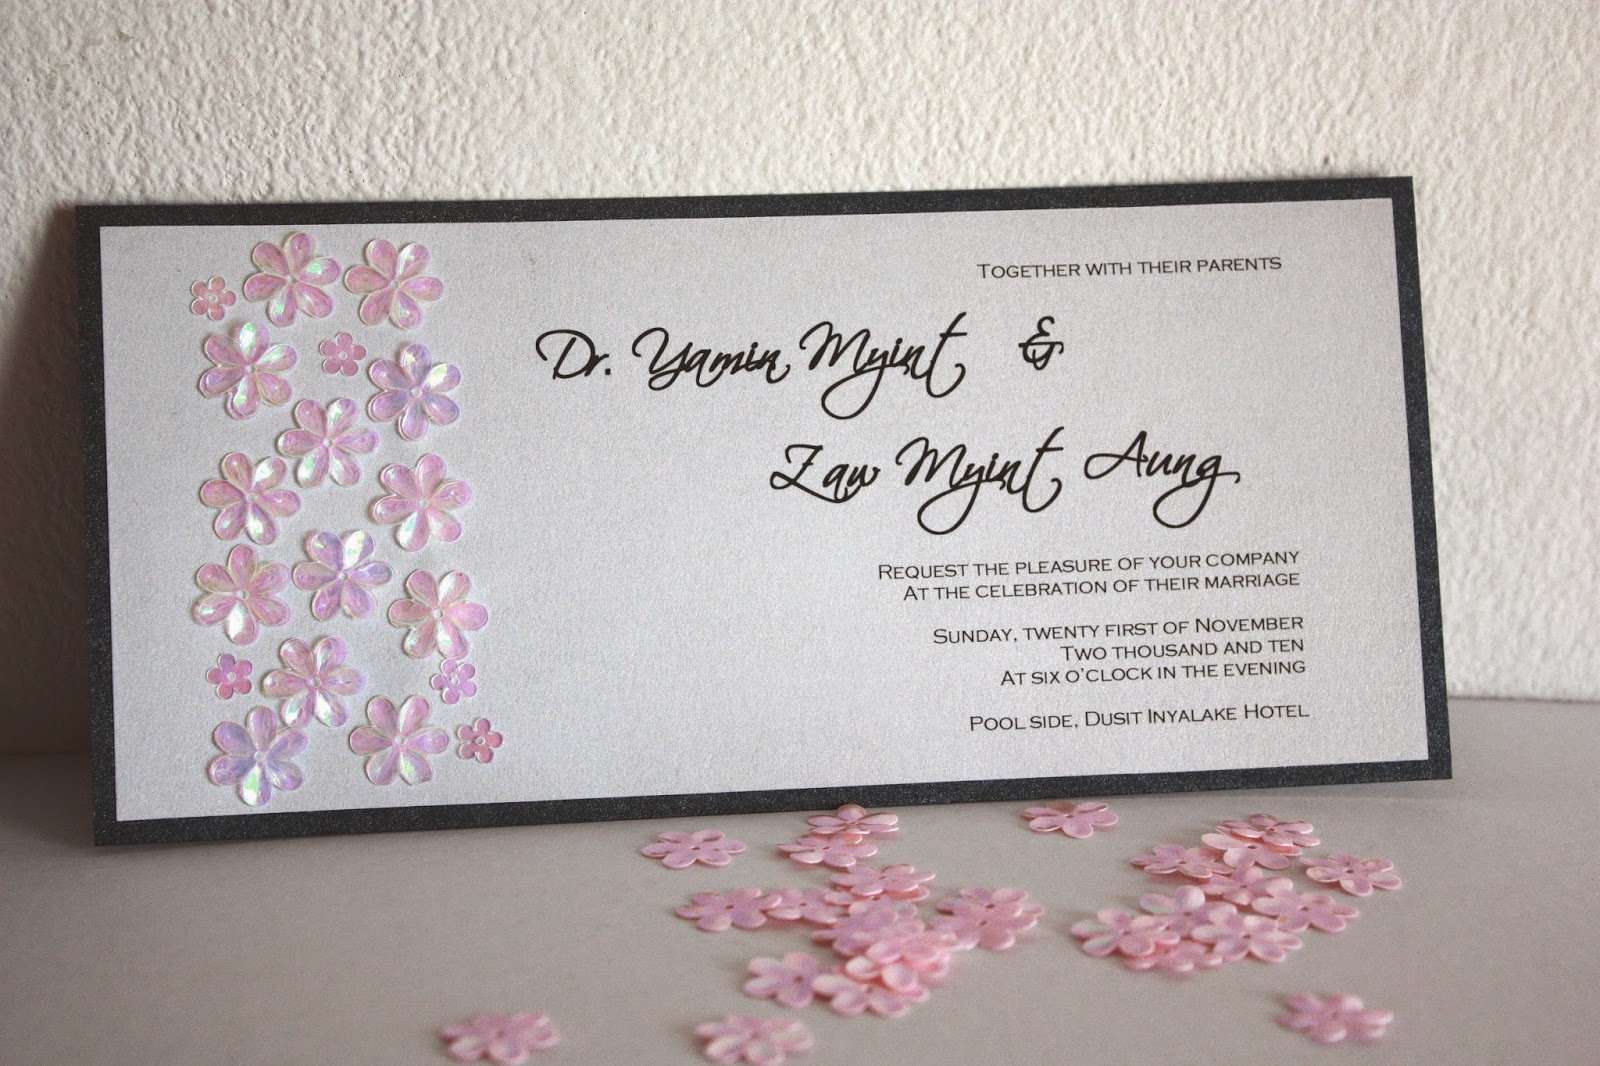 Wedding Invitation Card Handmade: Floral Sequined Handmade Wedding Invitation Card